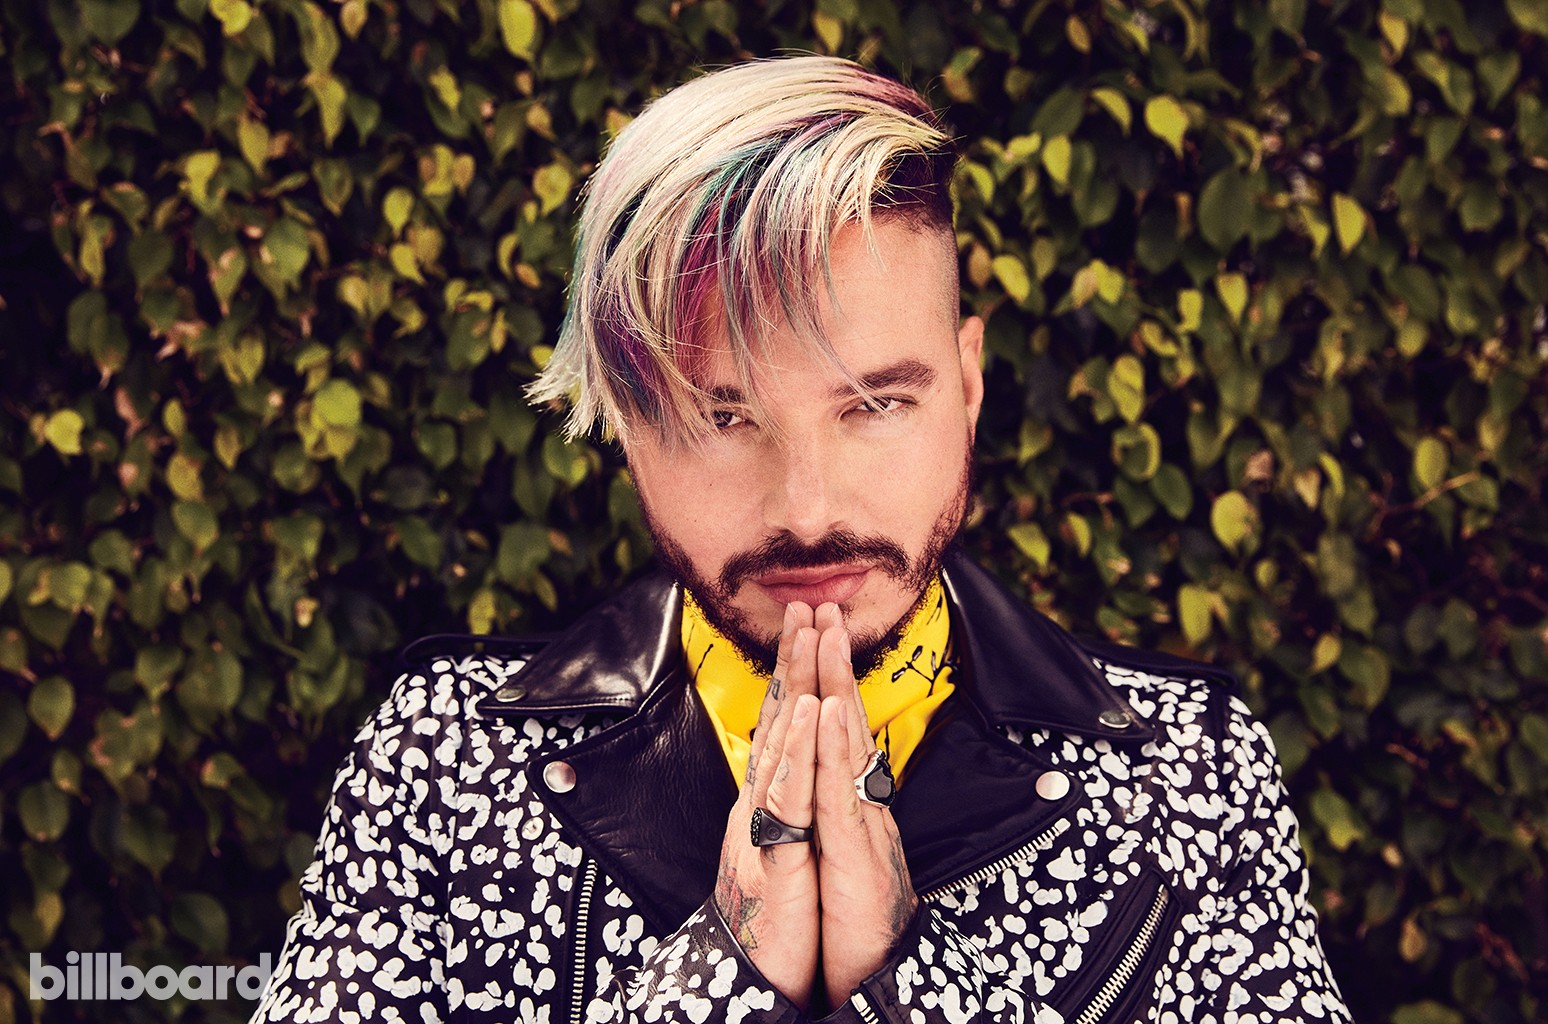 J Balvin photographed on April 17, 2017 in Miami. Styling by Shannon Adducci. Balvin wears a Haider Ackermann shirt, AMIRI jacket and David Yurman rings.